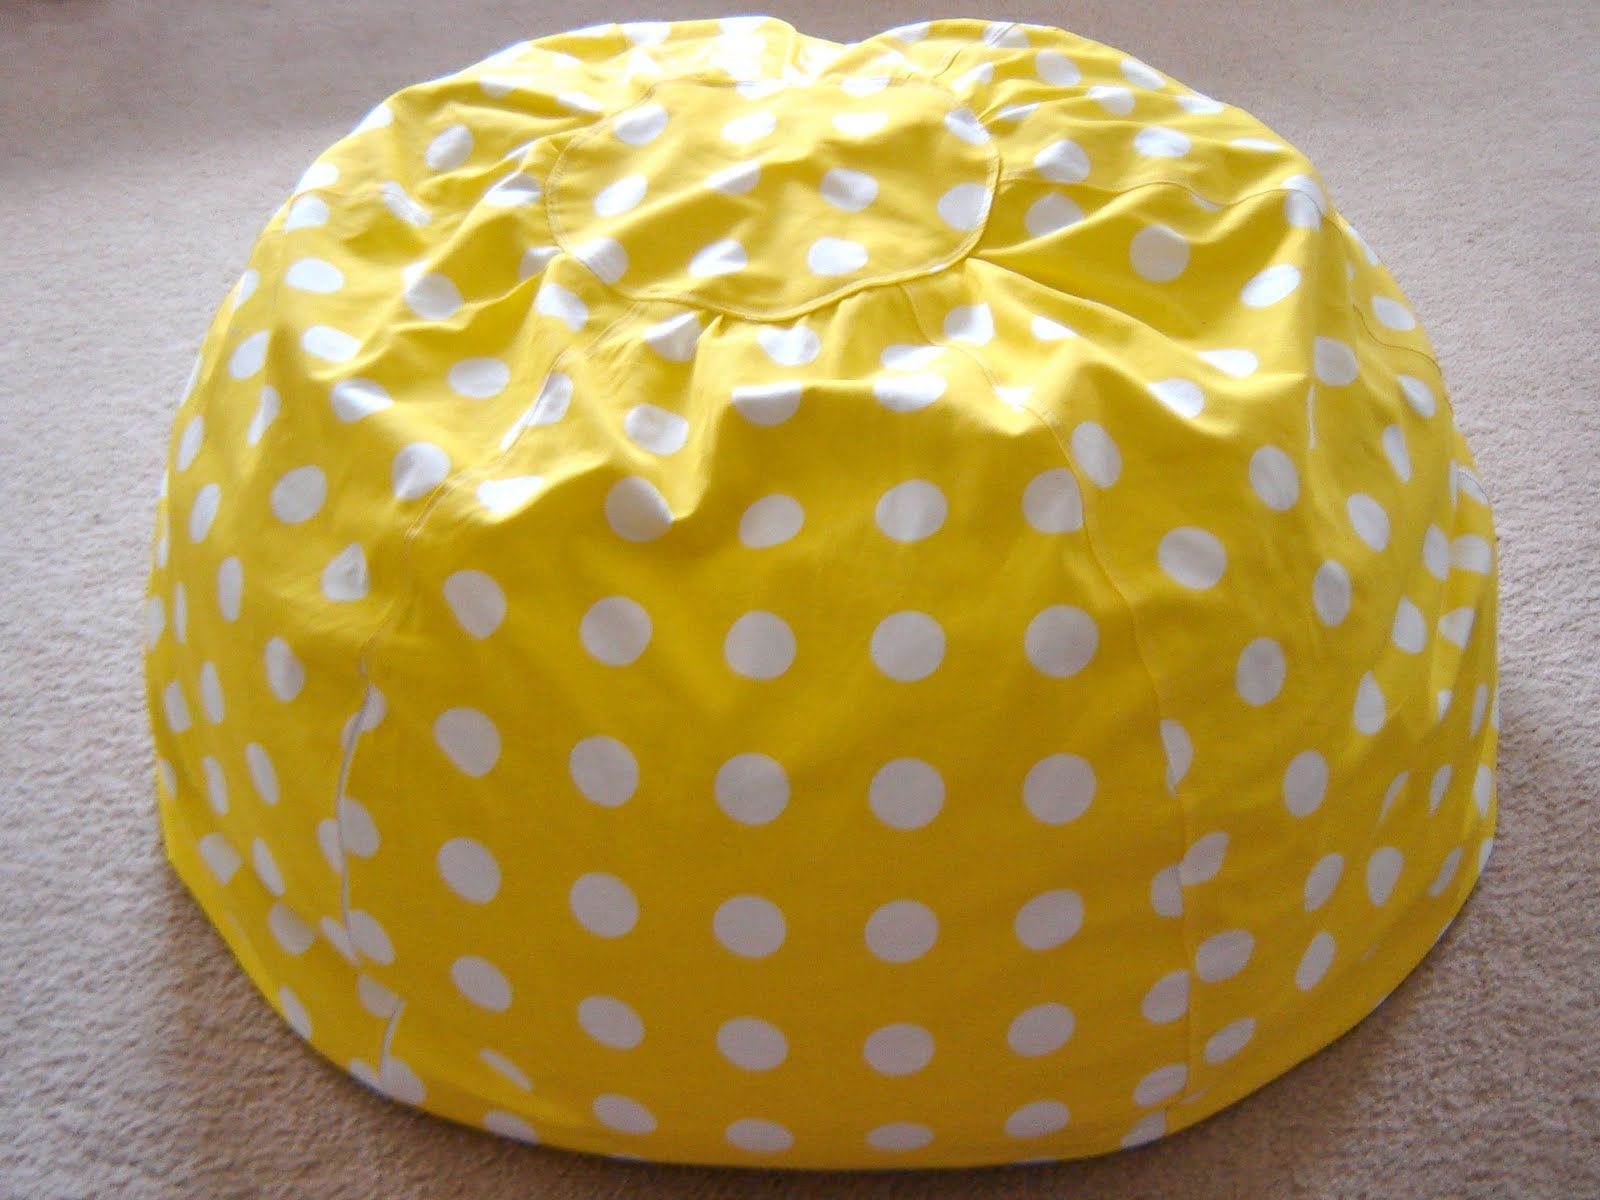 How to make bean bag chairs - Easy Bean Bag Chair Pattern On It I Used The Adult Size